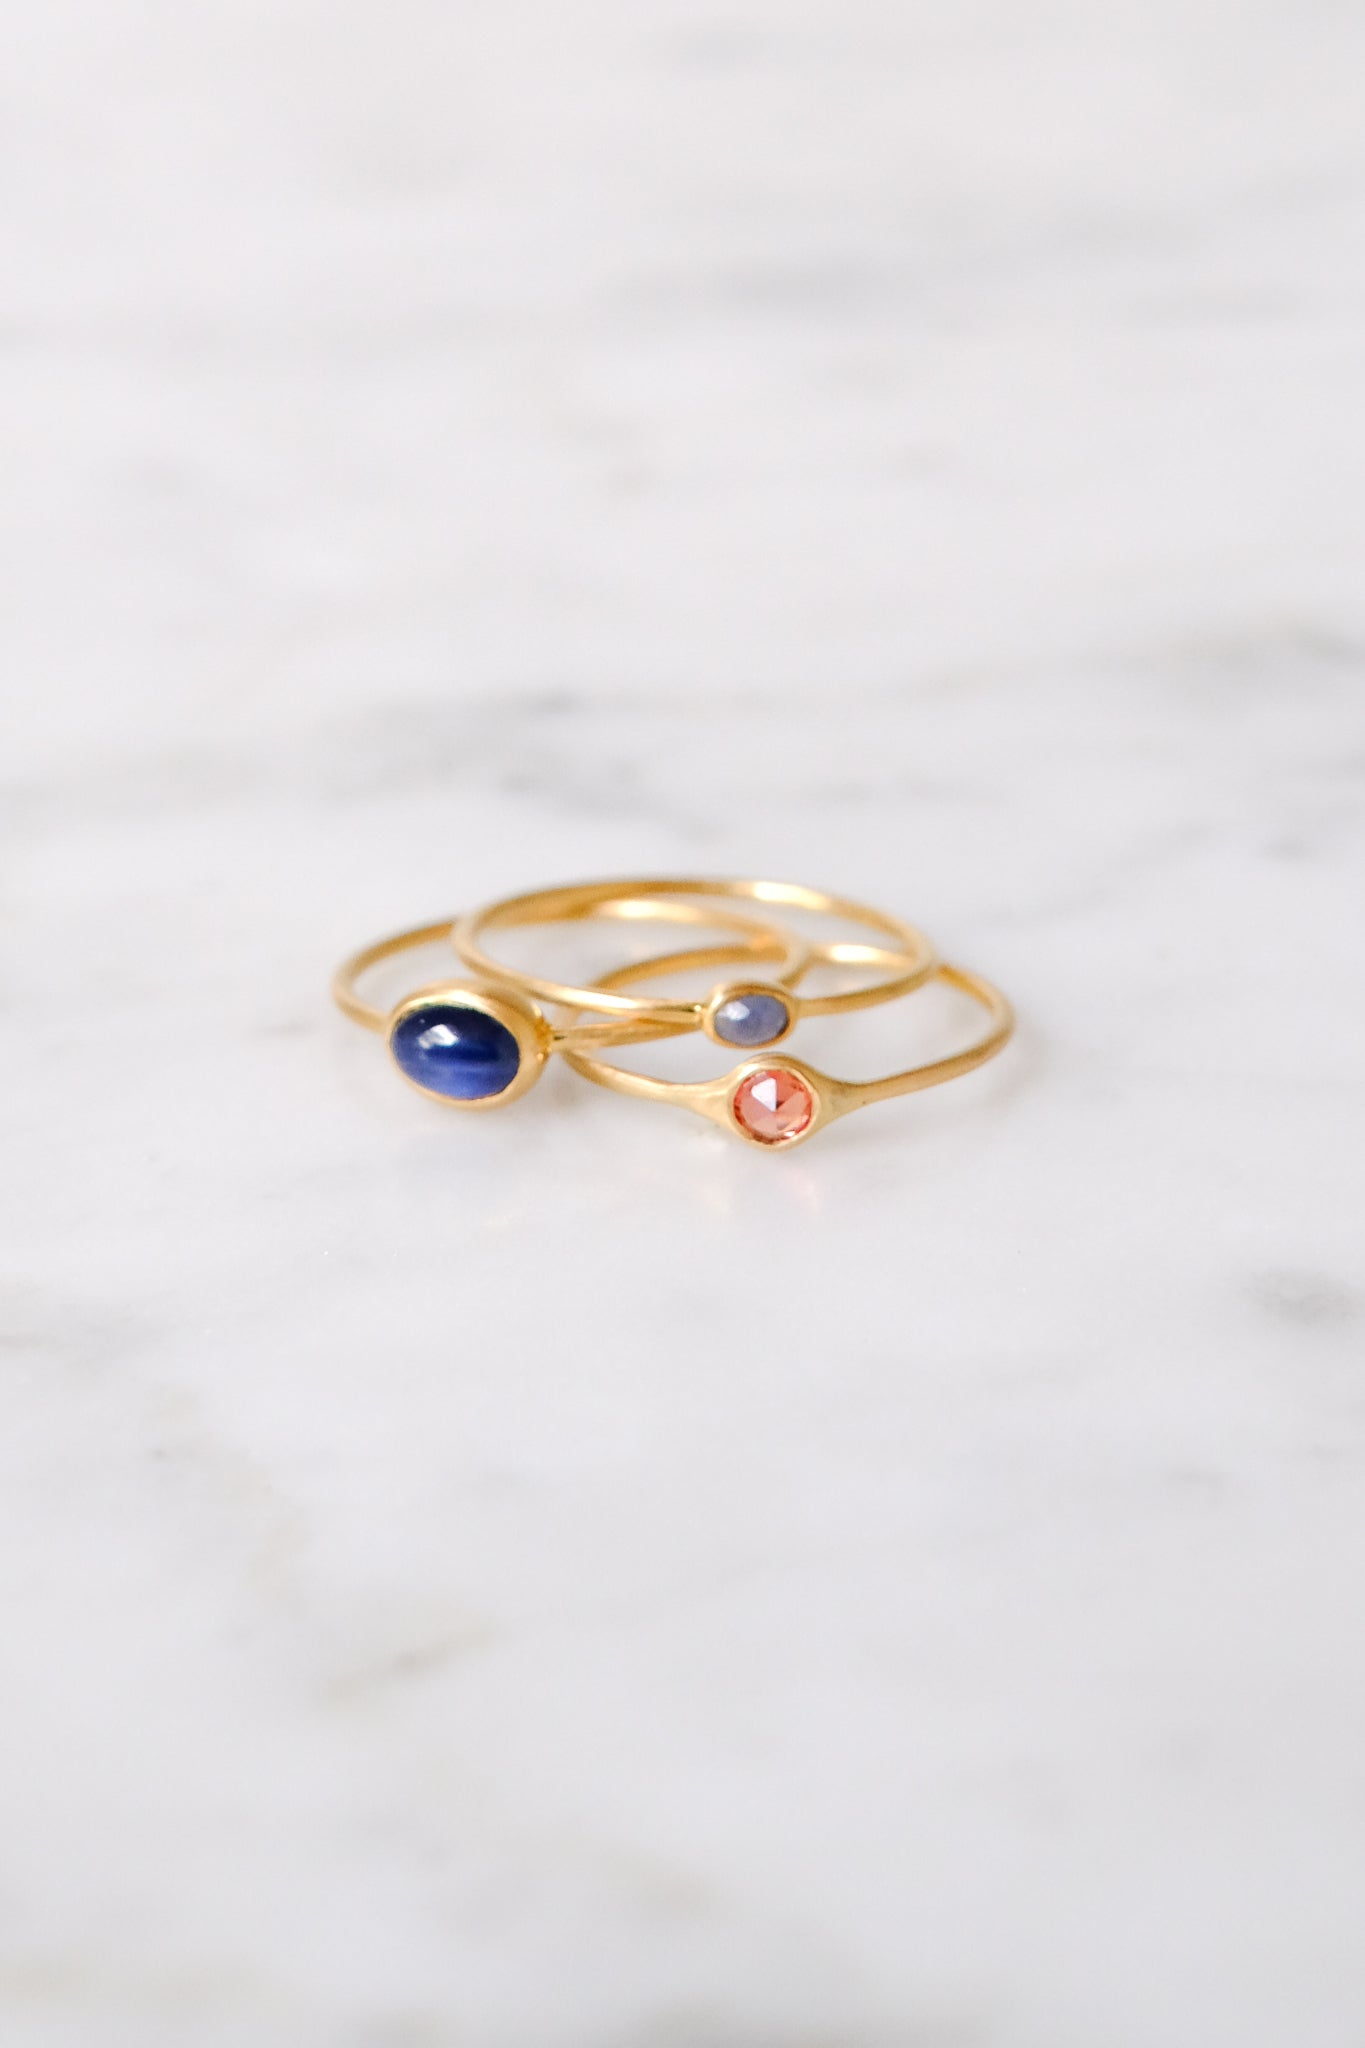 Margaret Solow :: Ring, Grey/Blue Sapphire 18kt